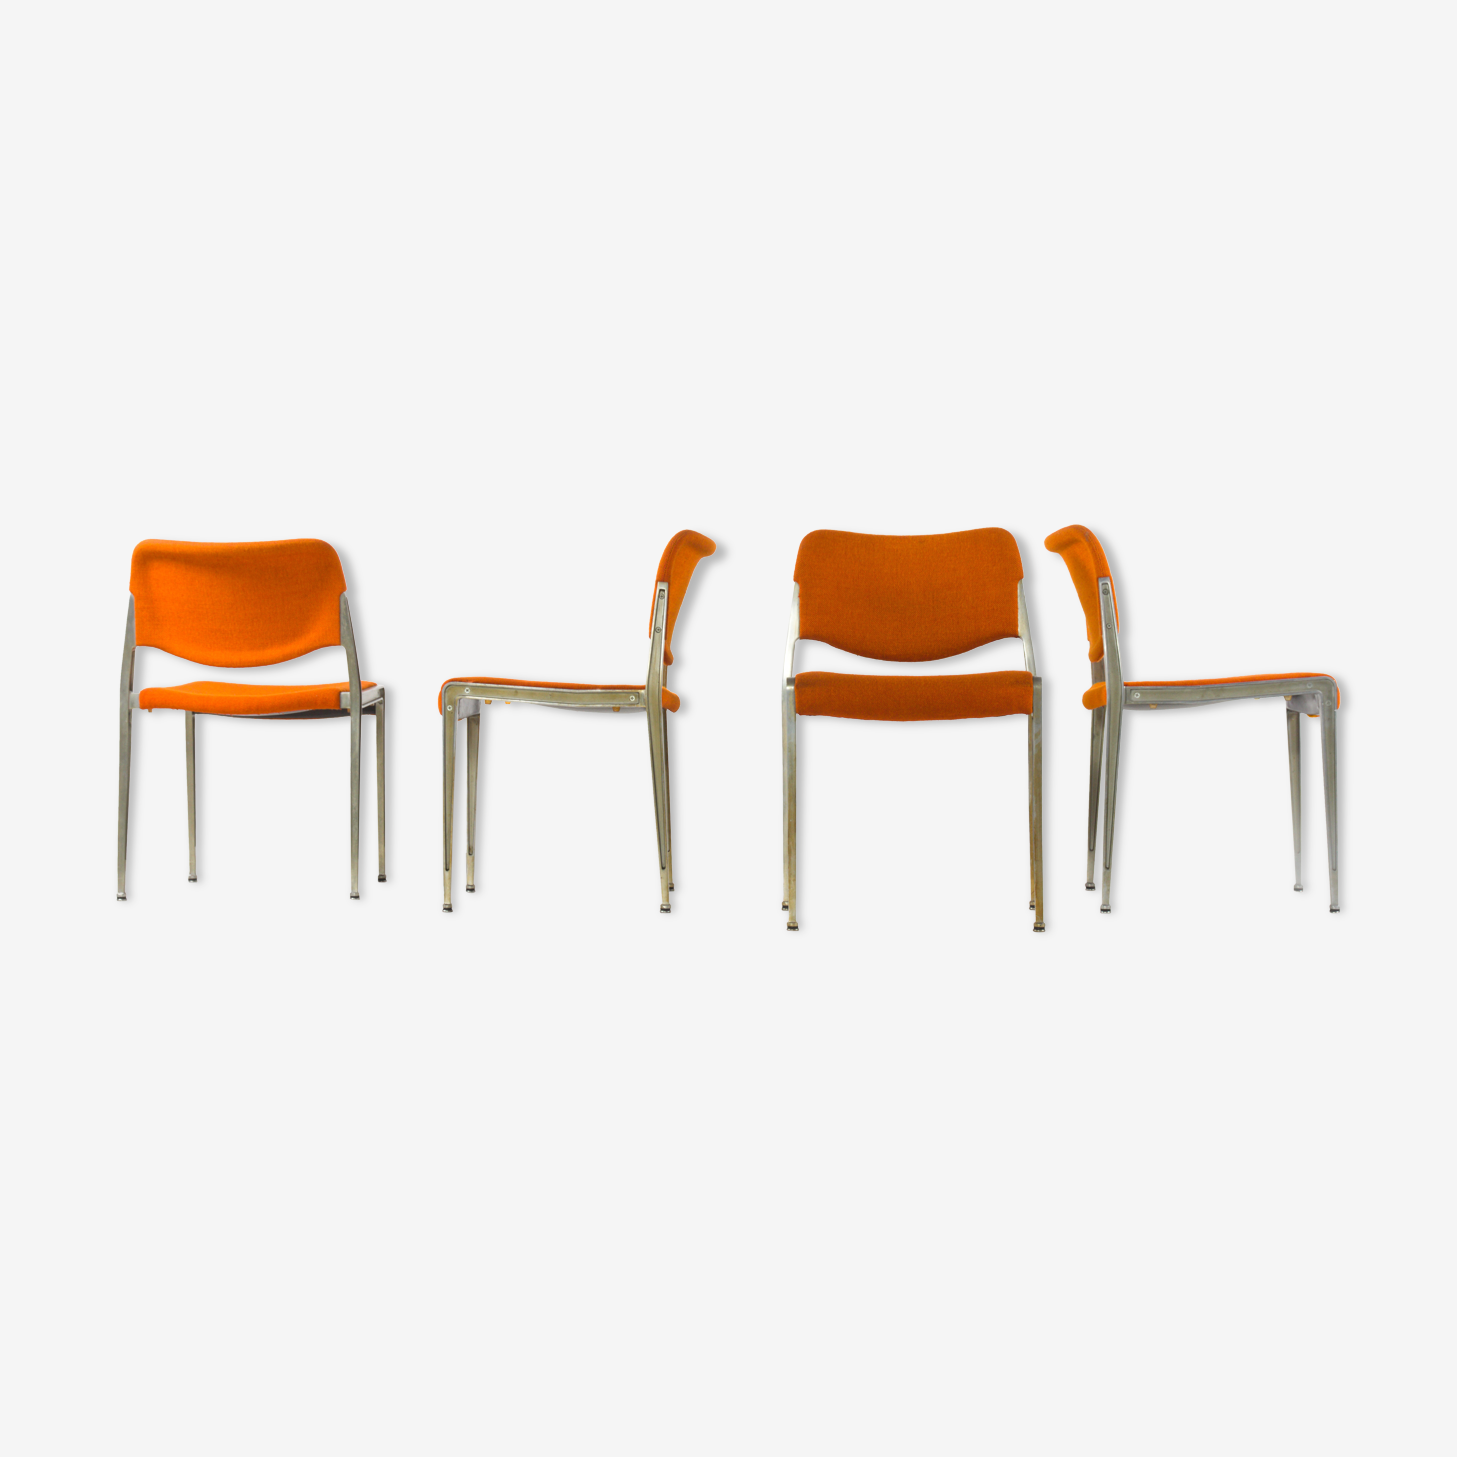 Four padded stackable chairs by Kusch